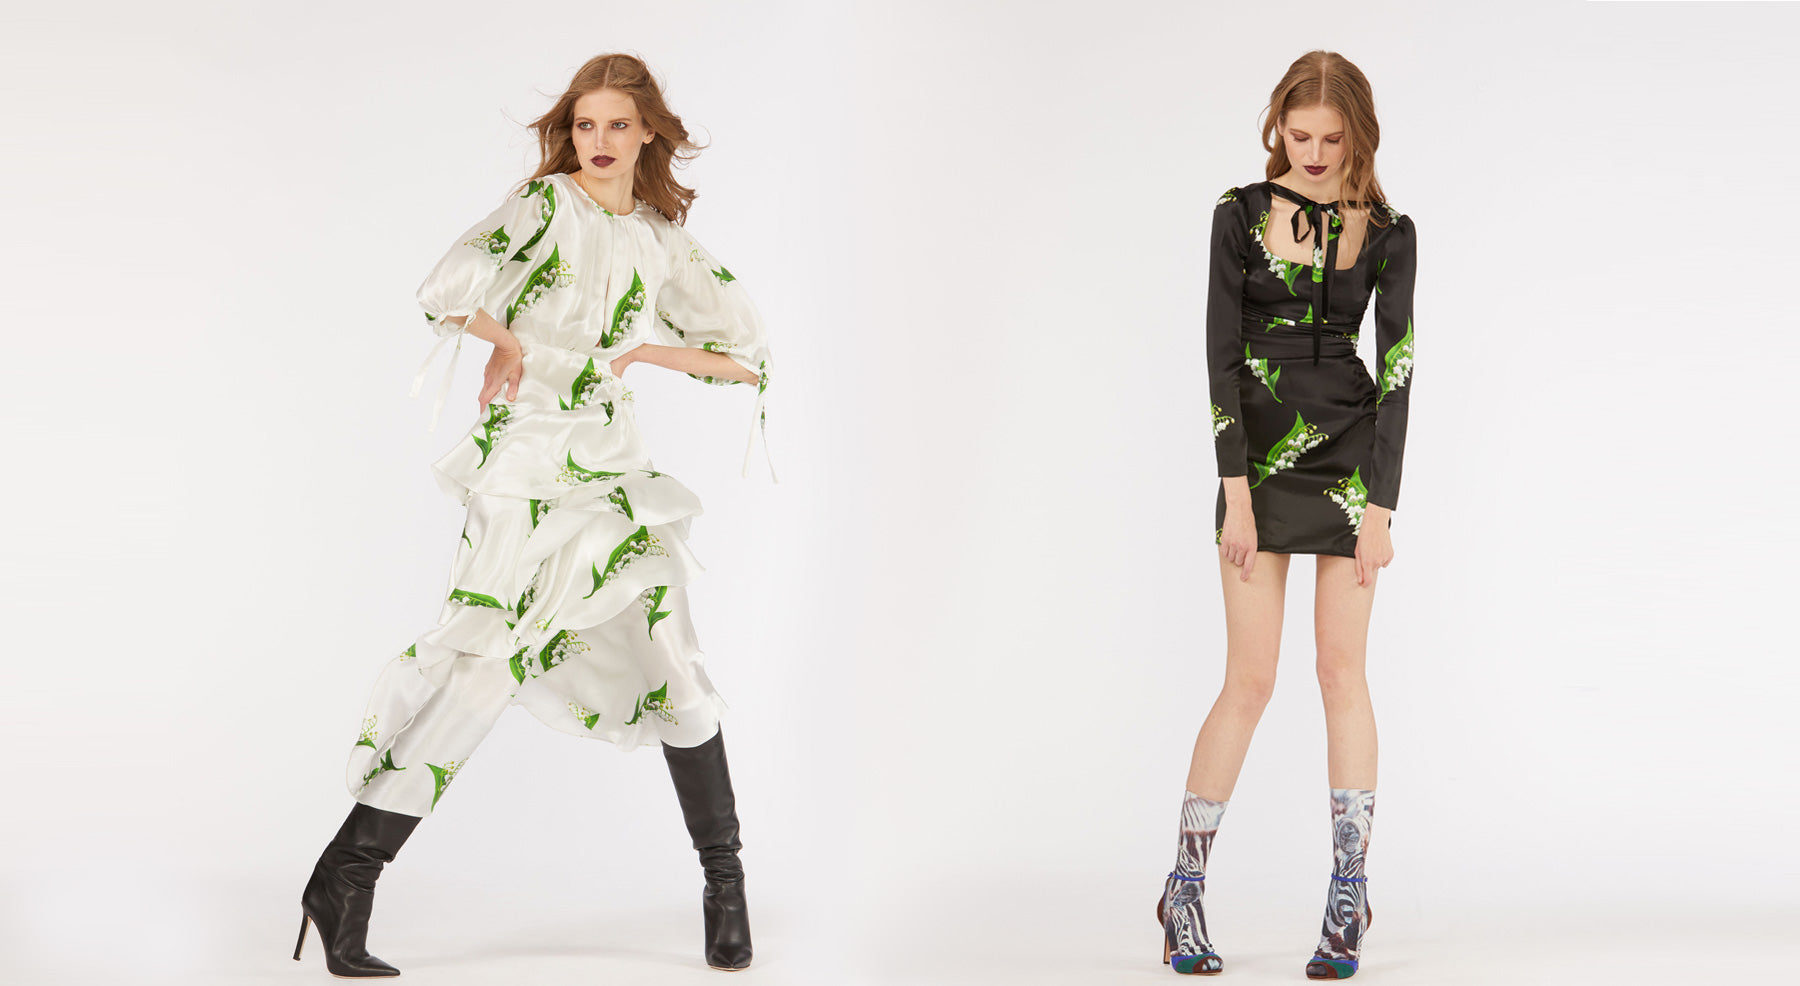 Fall 2018 Look Book images featuring models wearing dresses in  large scale lily of the Valley printed silk.